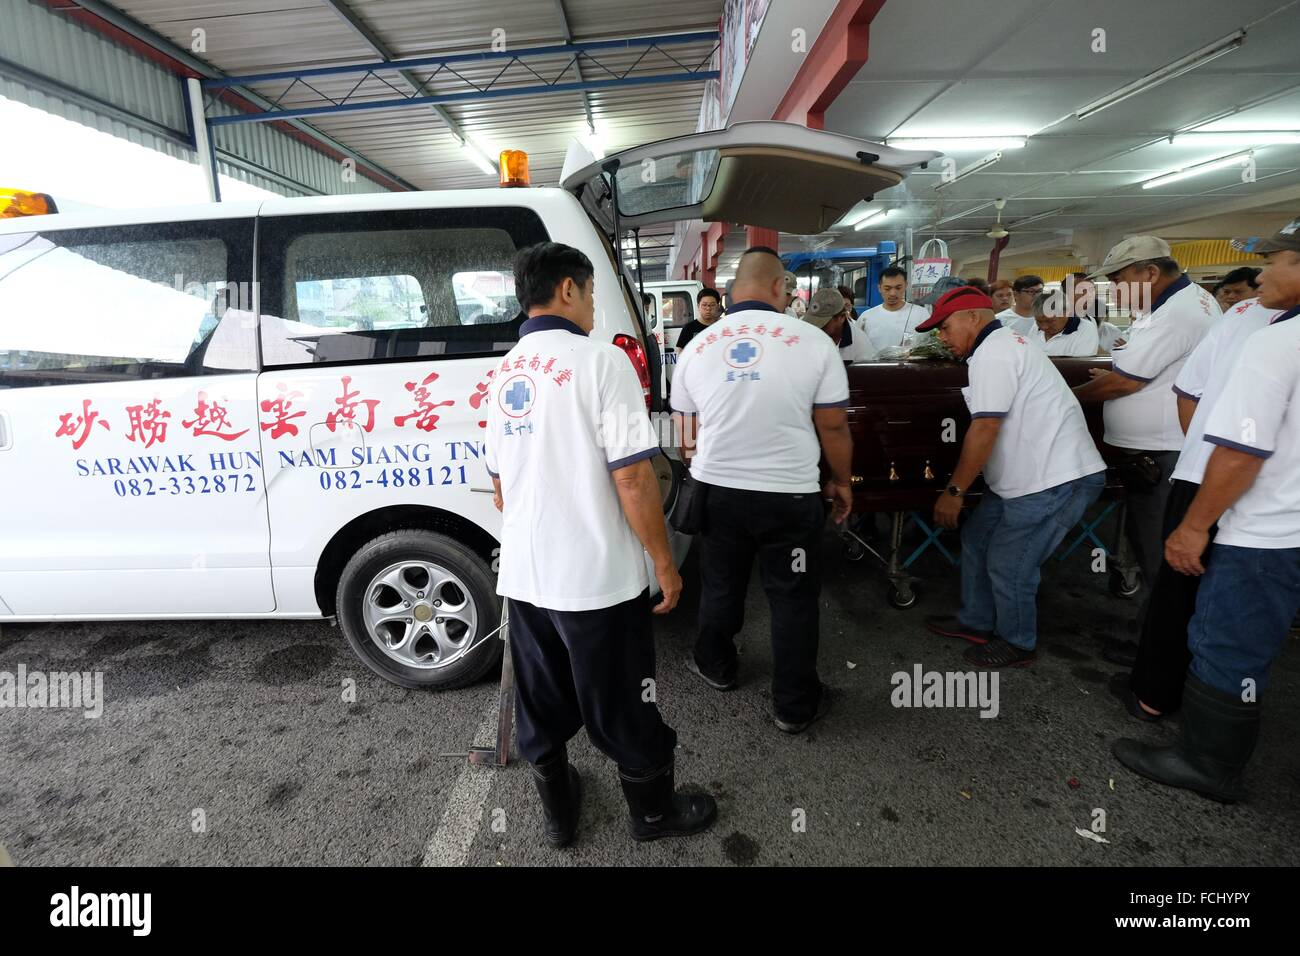 Sending off for burial. Sarawakian chinese funeral ceremony. Malaysia - Stock Image